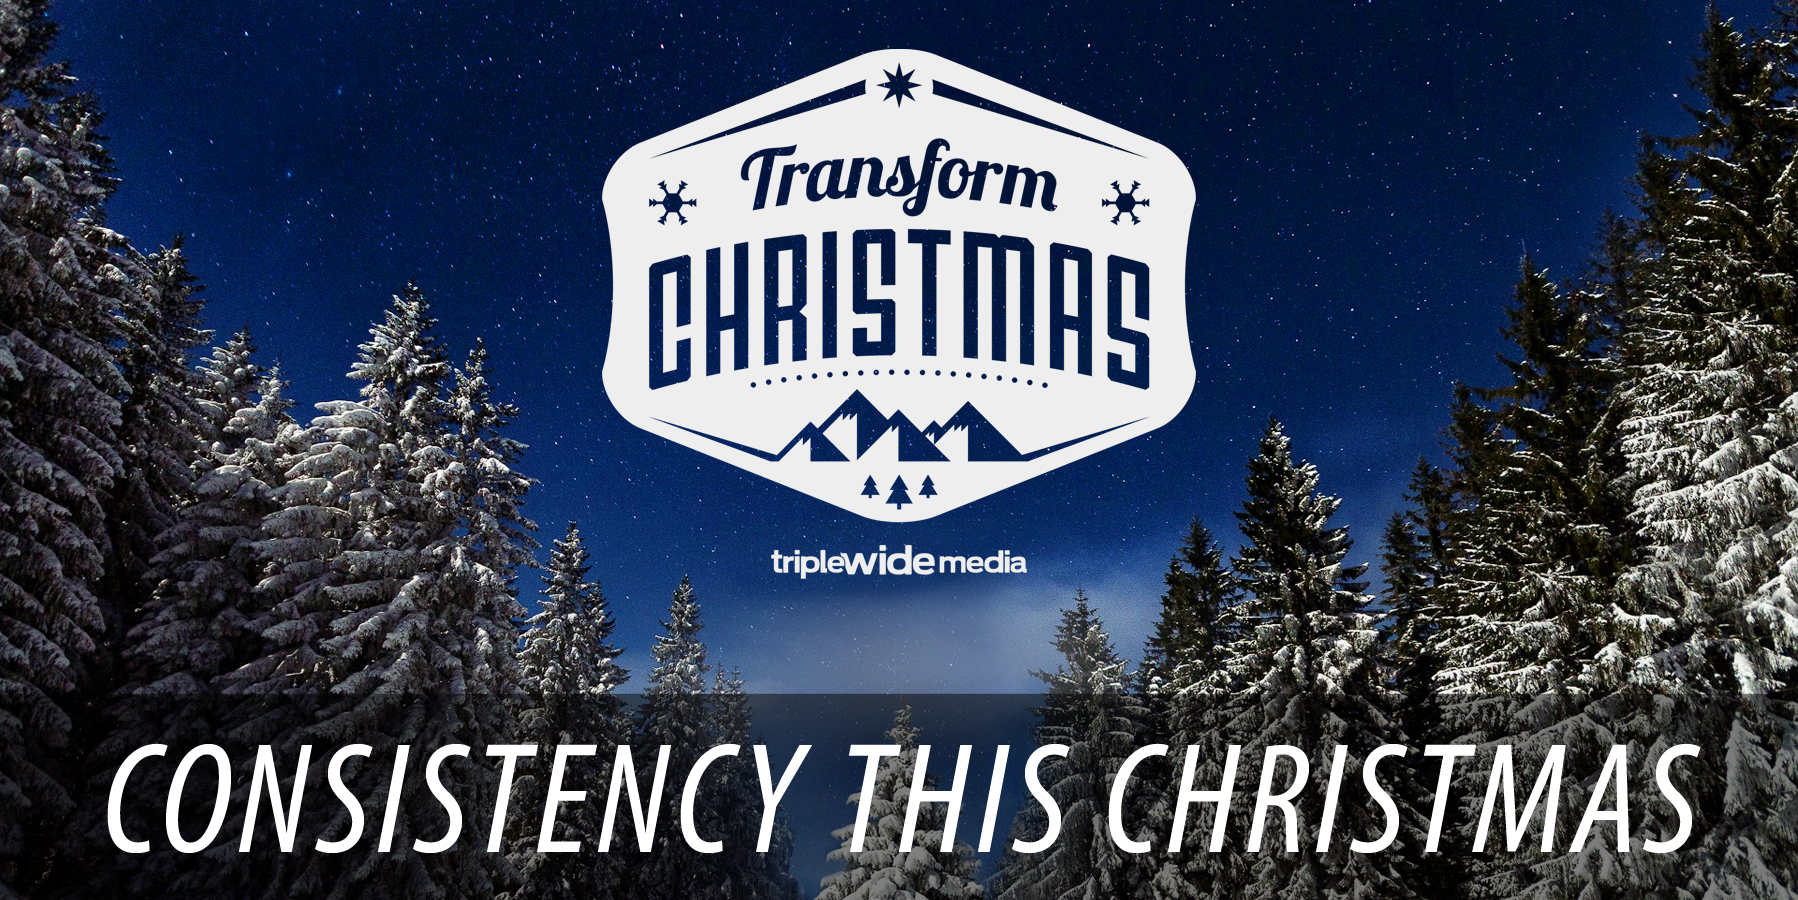 Consistency this Christmas